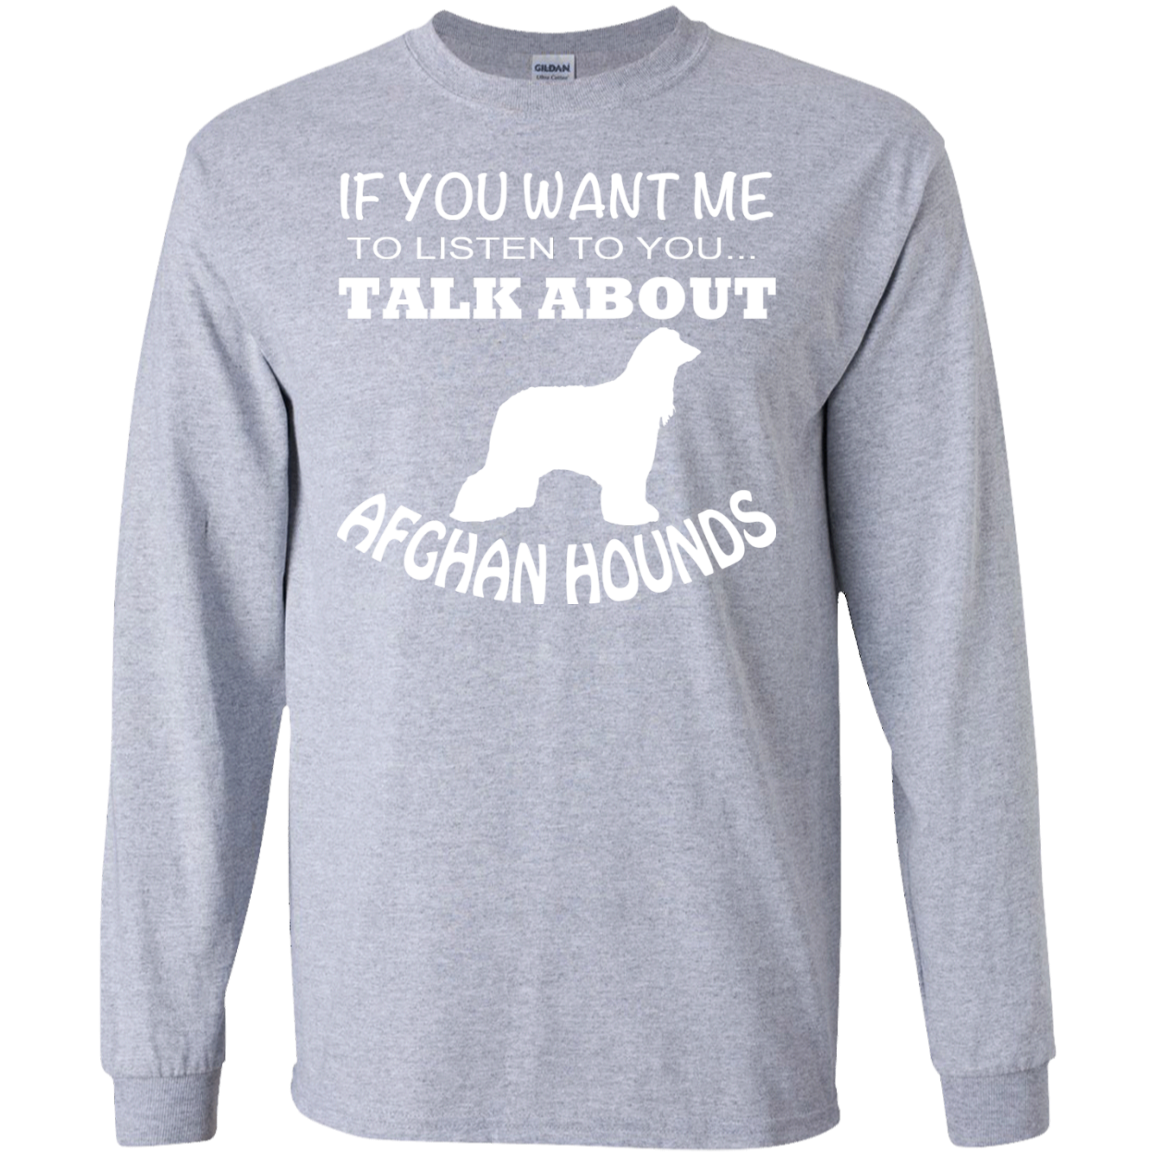 If You Want Me To Listen To You Talk About Afghan Hounds Long Sleeve Tees